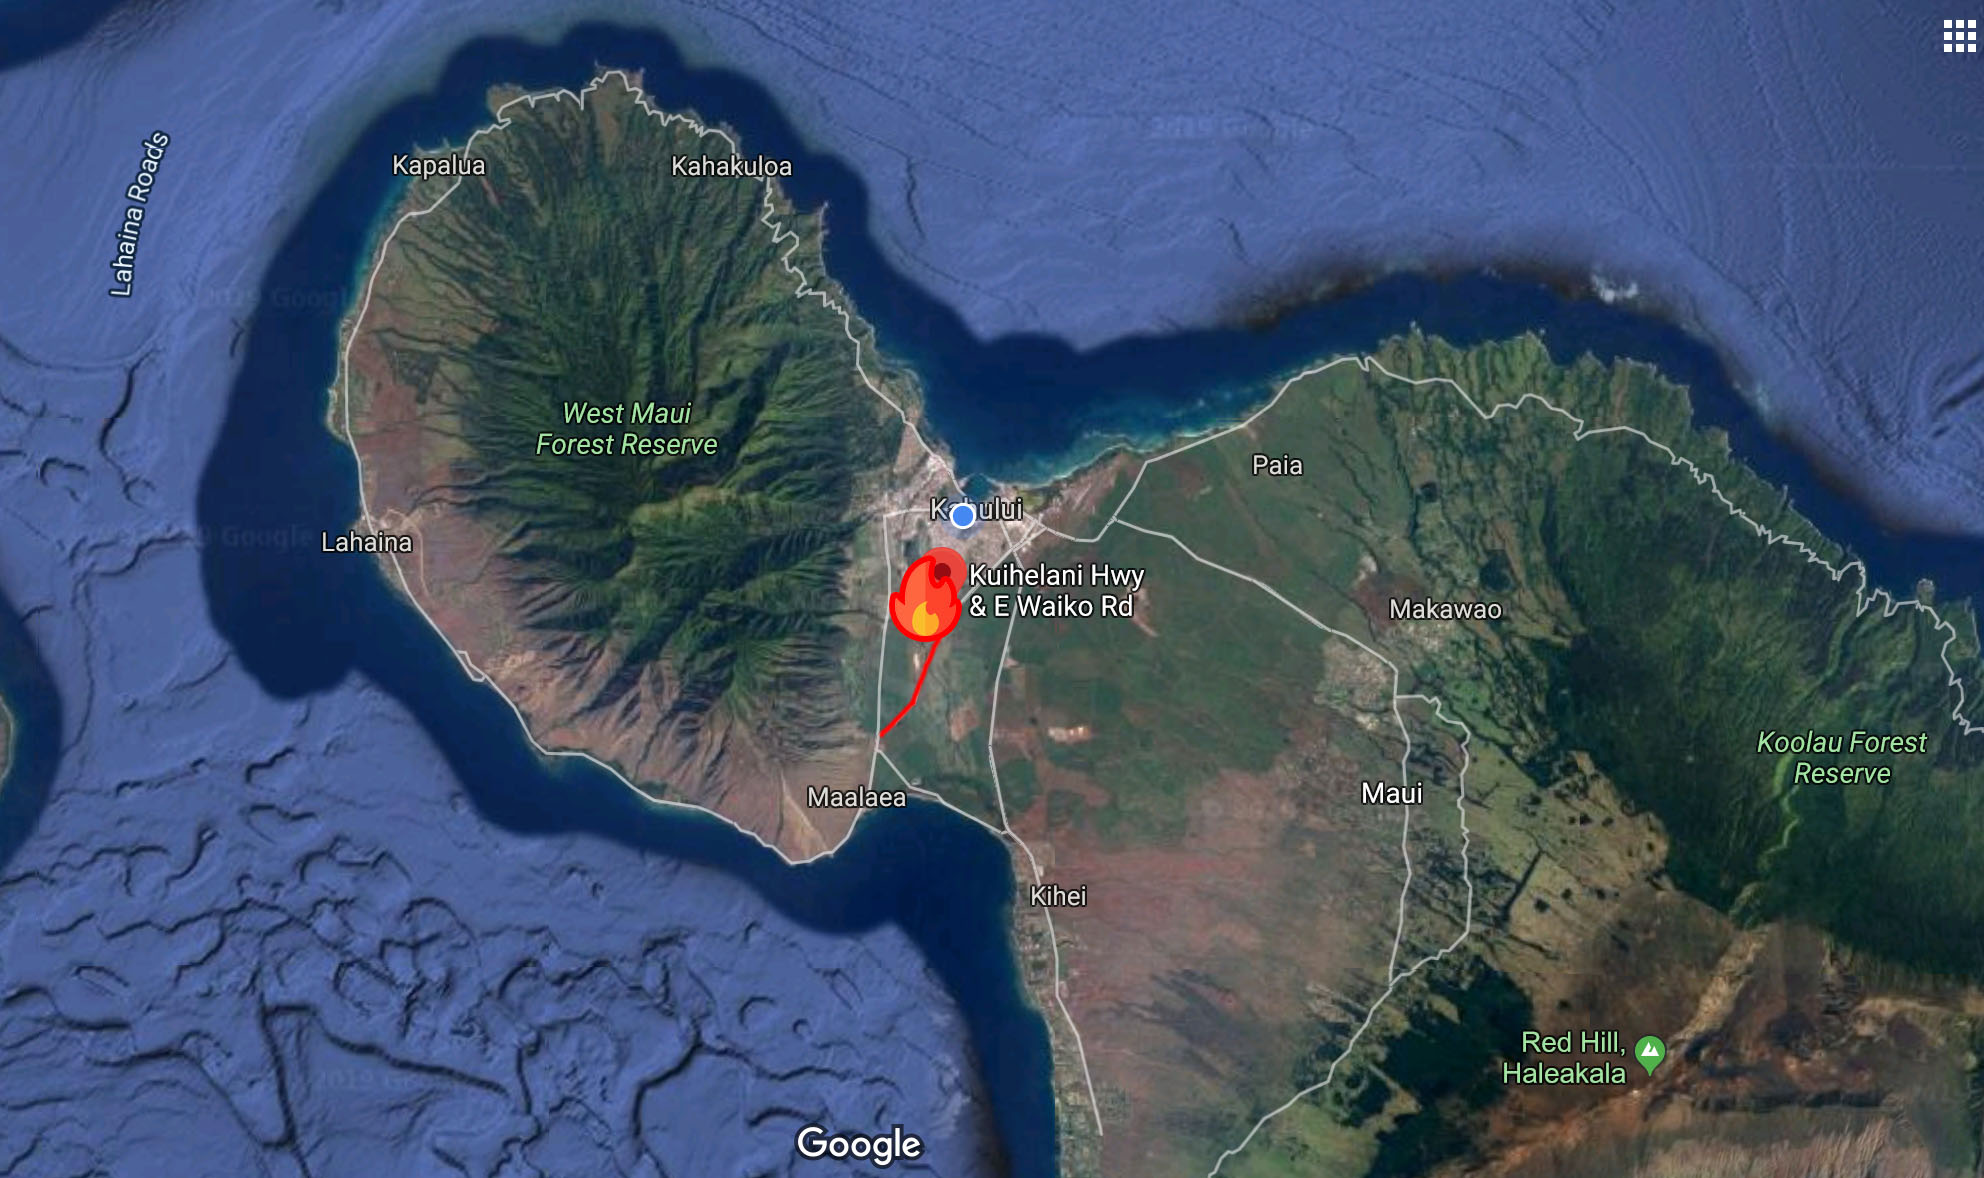 Maui wildfire rages on, burns 10,000 acres